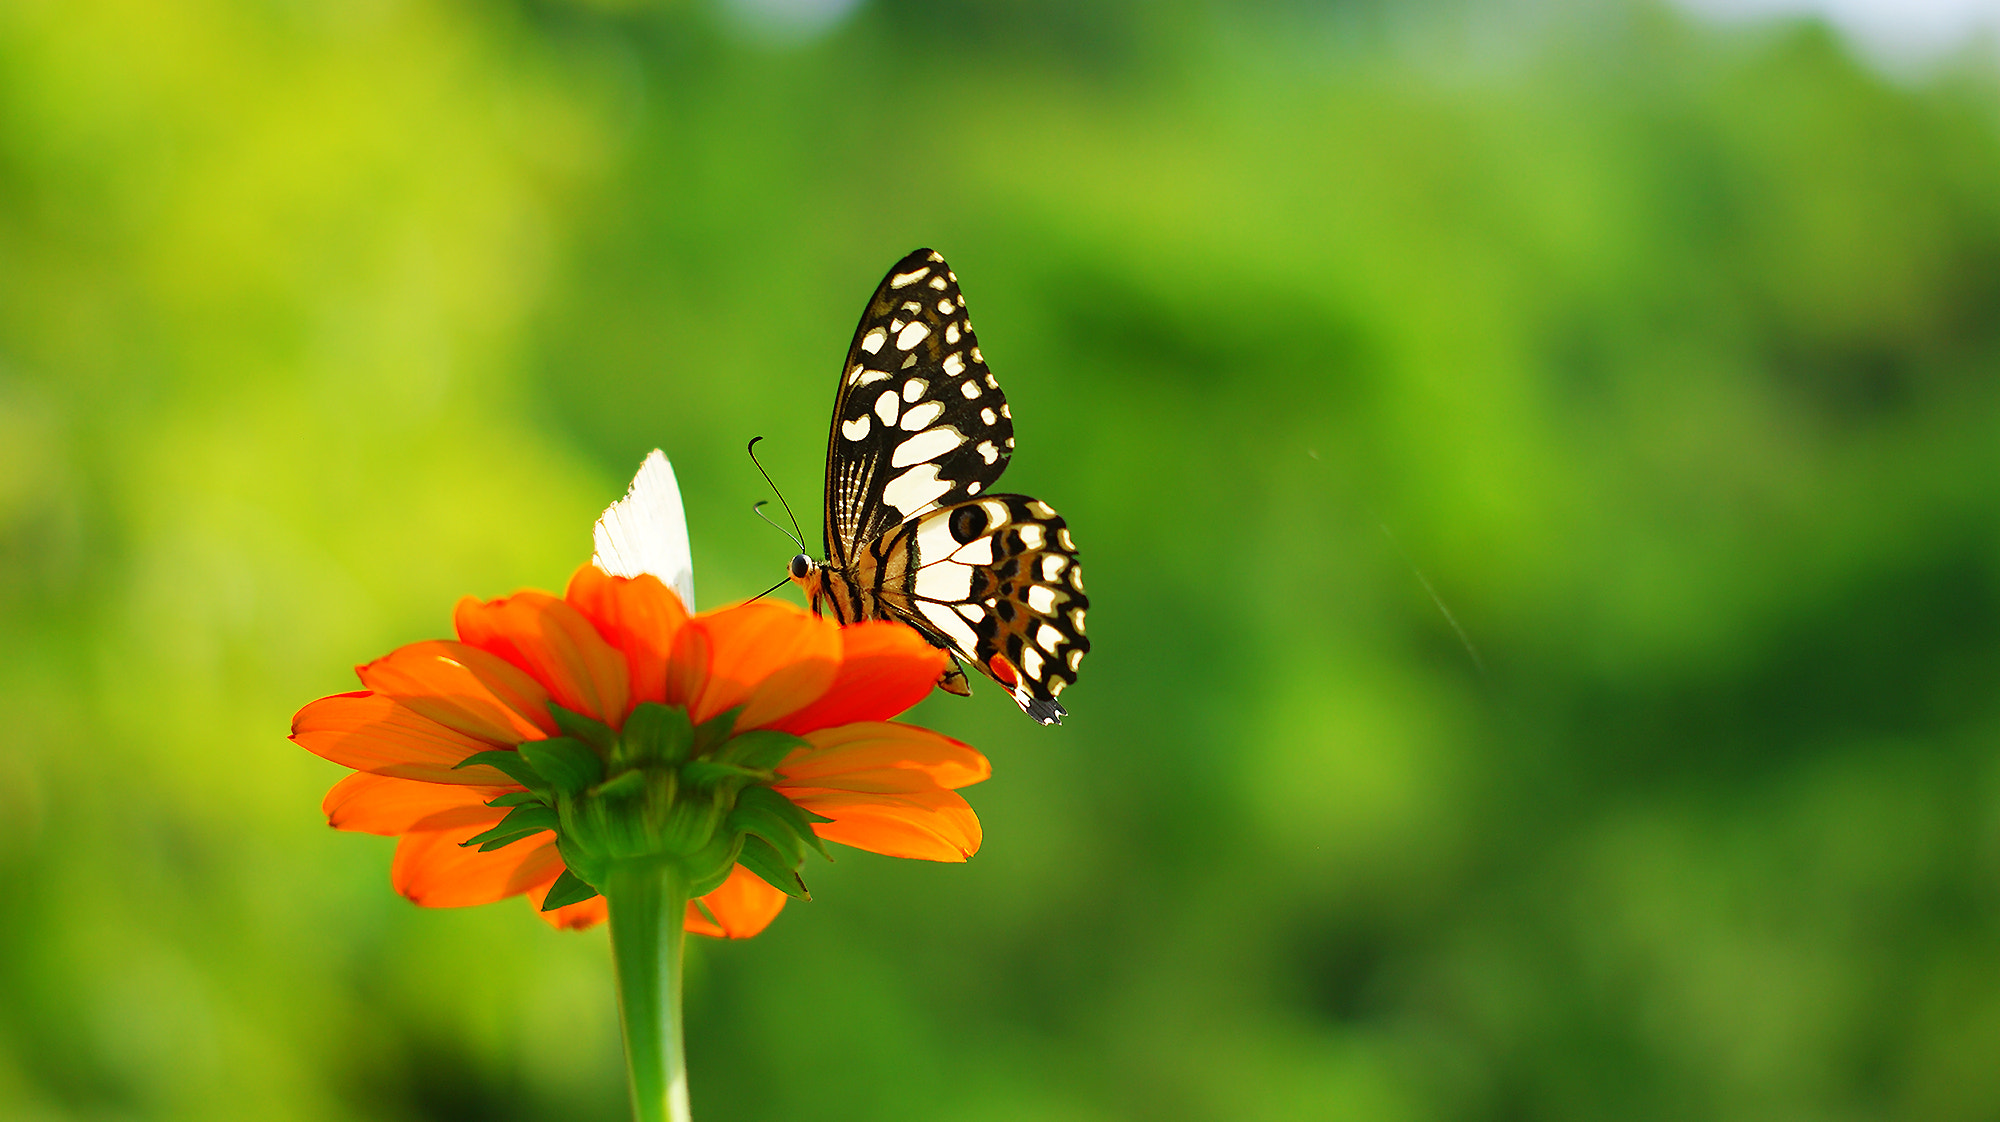 Photograph Bg green and buterfly by lionpink on 500px